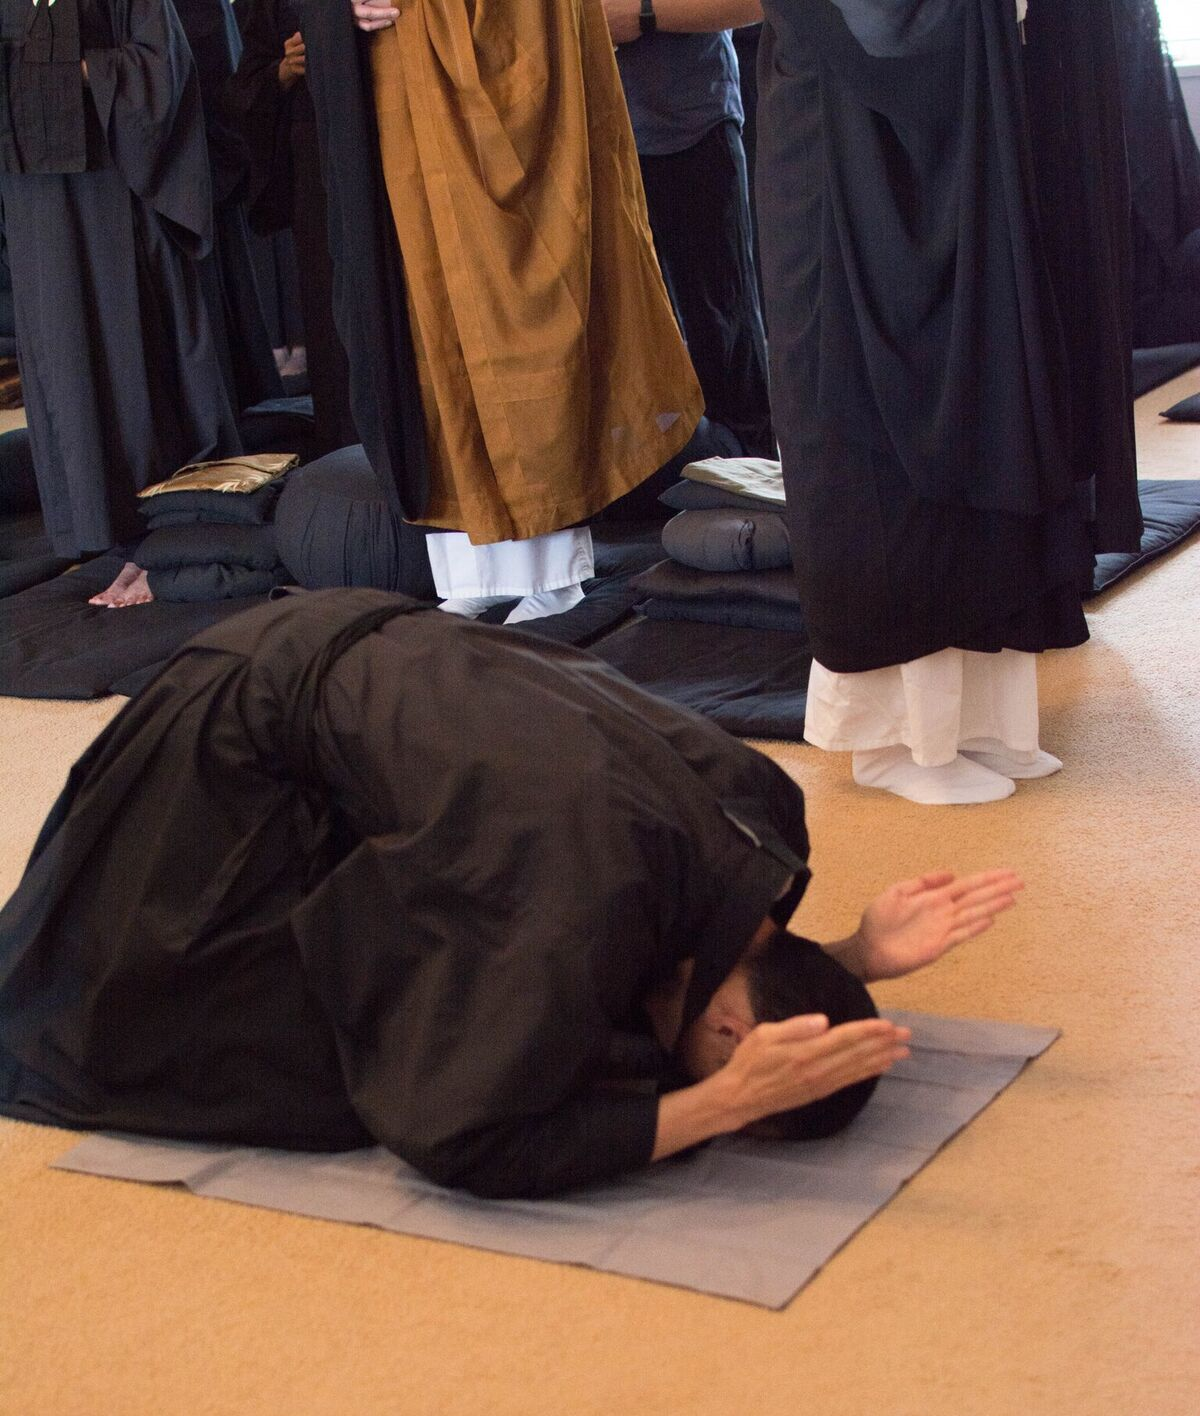 Juzen bowing1